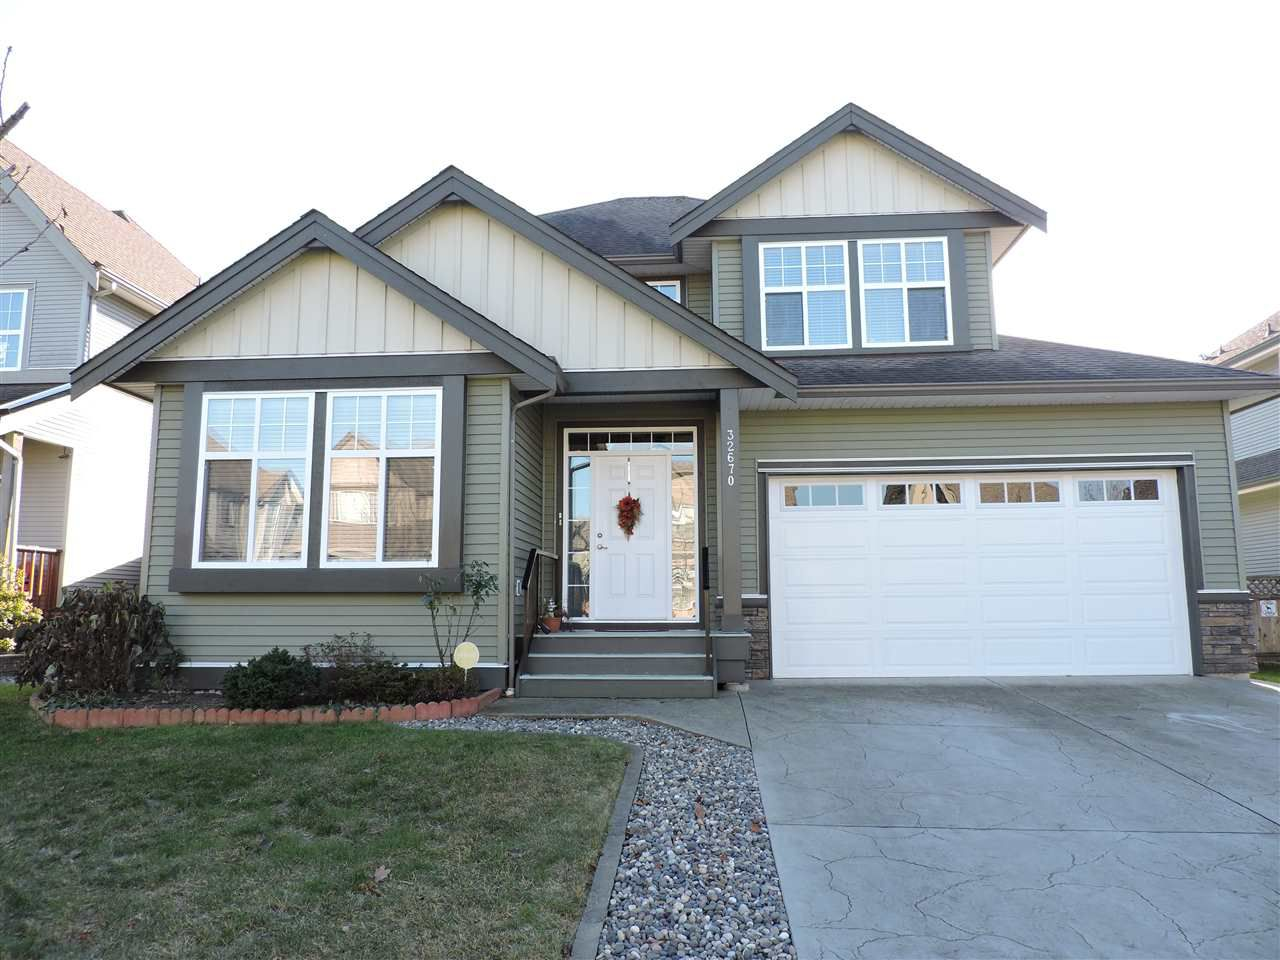 Main Photo: 32670 APPLEBY COURT in Mission: Mission BC House for sale : MLS®# R2017753